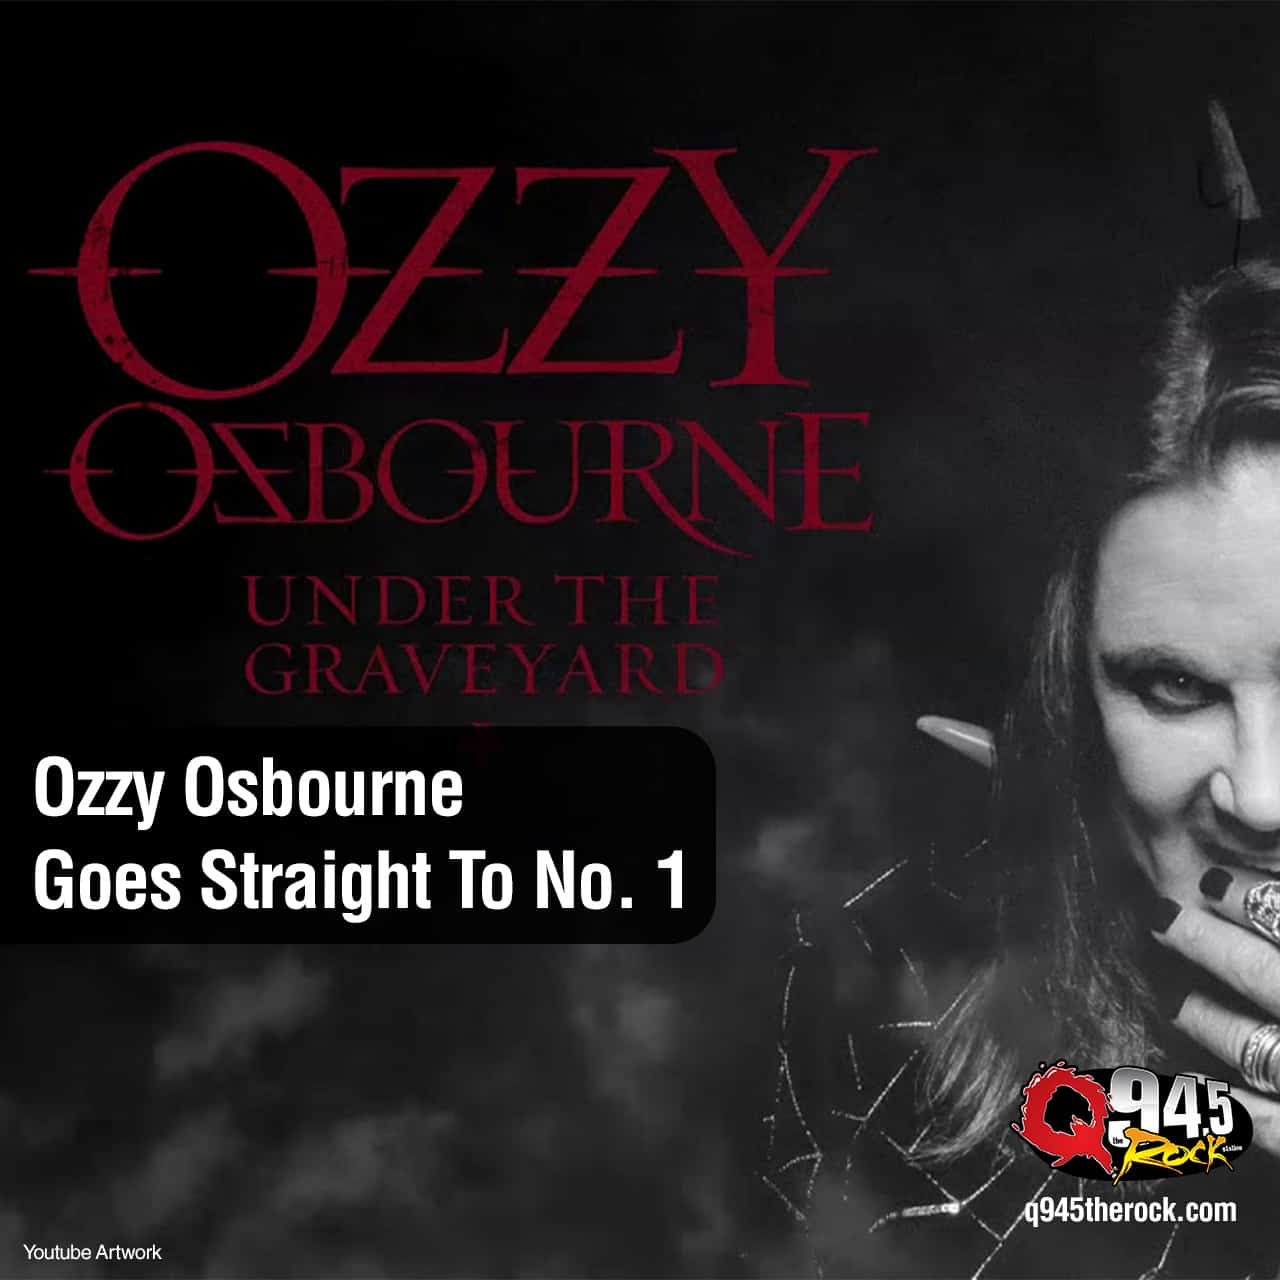 Ozzy Osbourne Goes Straight To No. 1